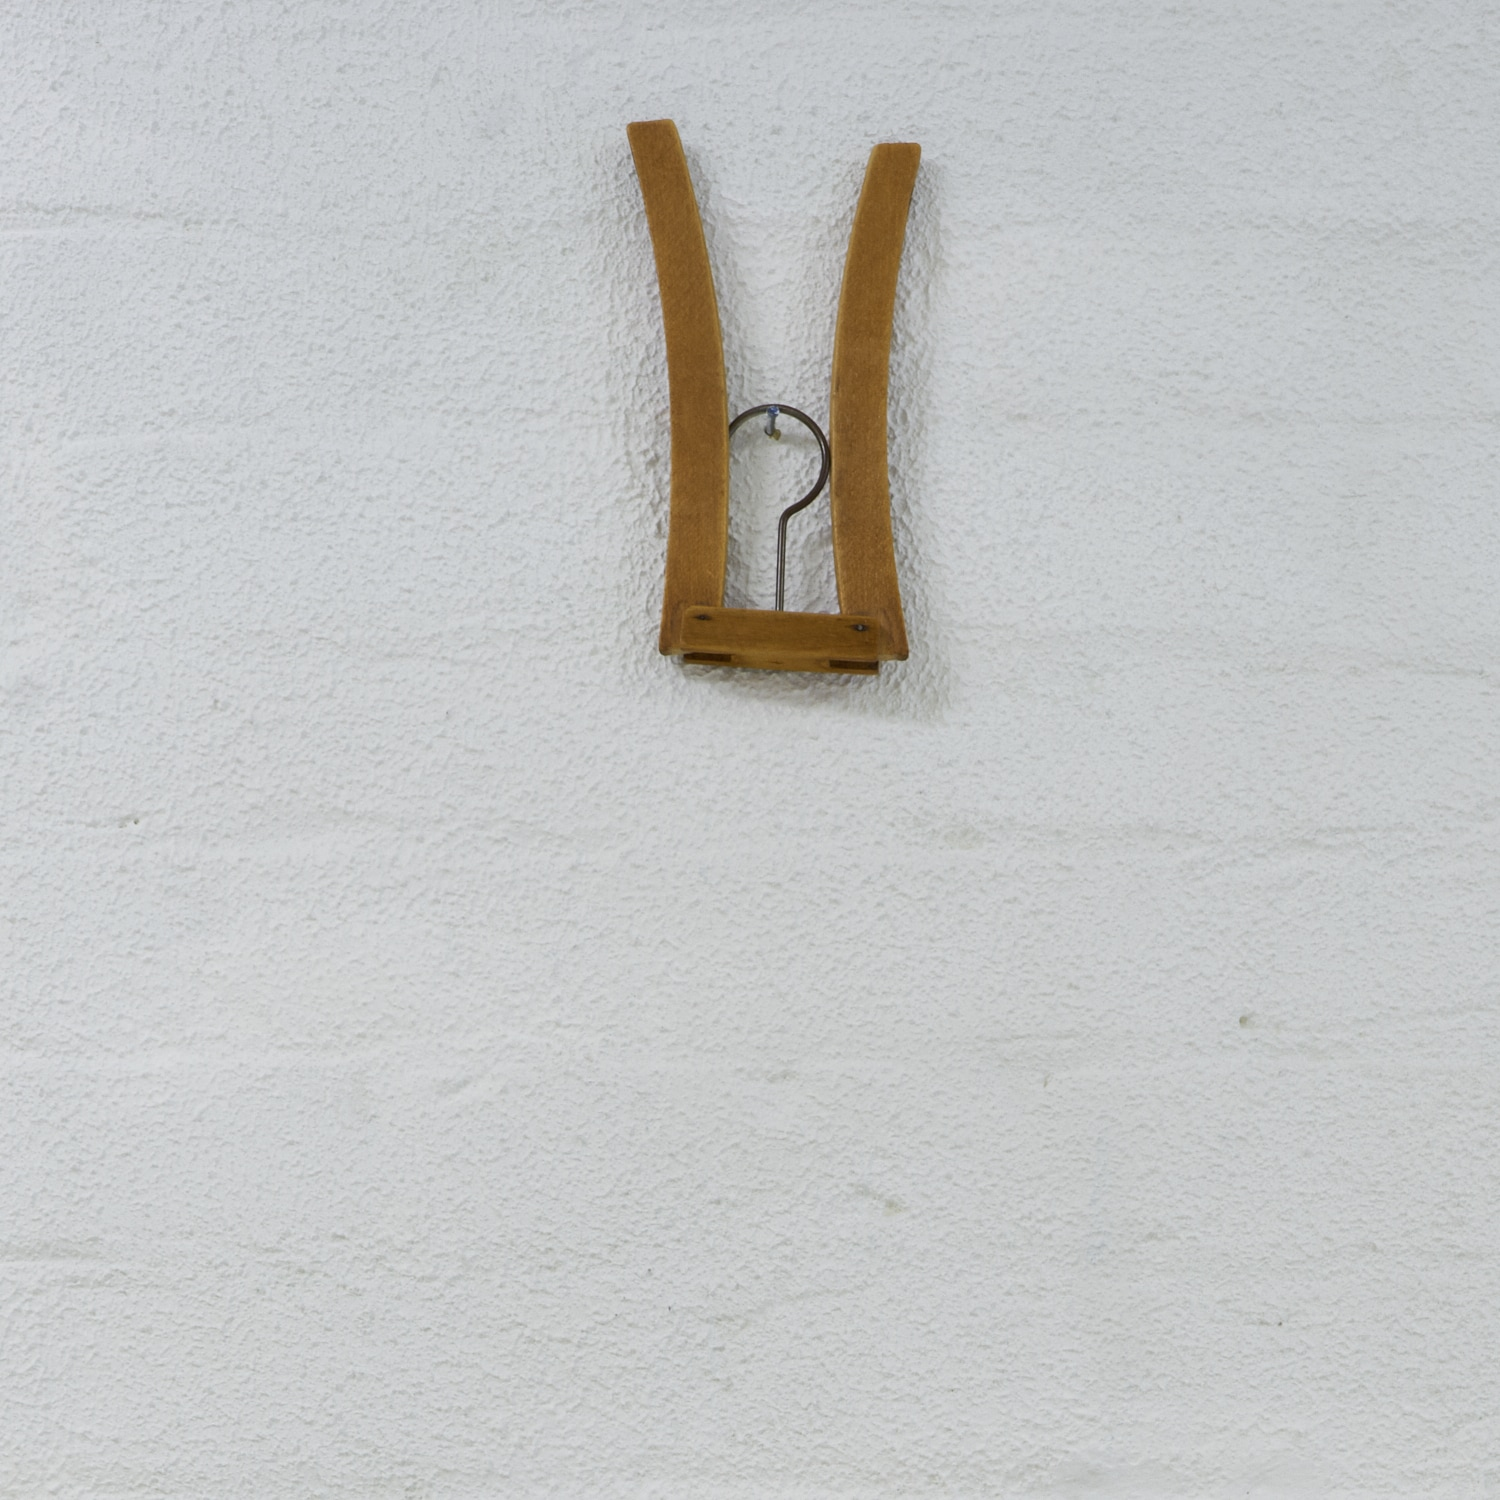 Bridget Currie,  A hanger from my collection  (folding wood hanger), date unknown, Lithuanian. Wood and metal.